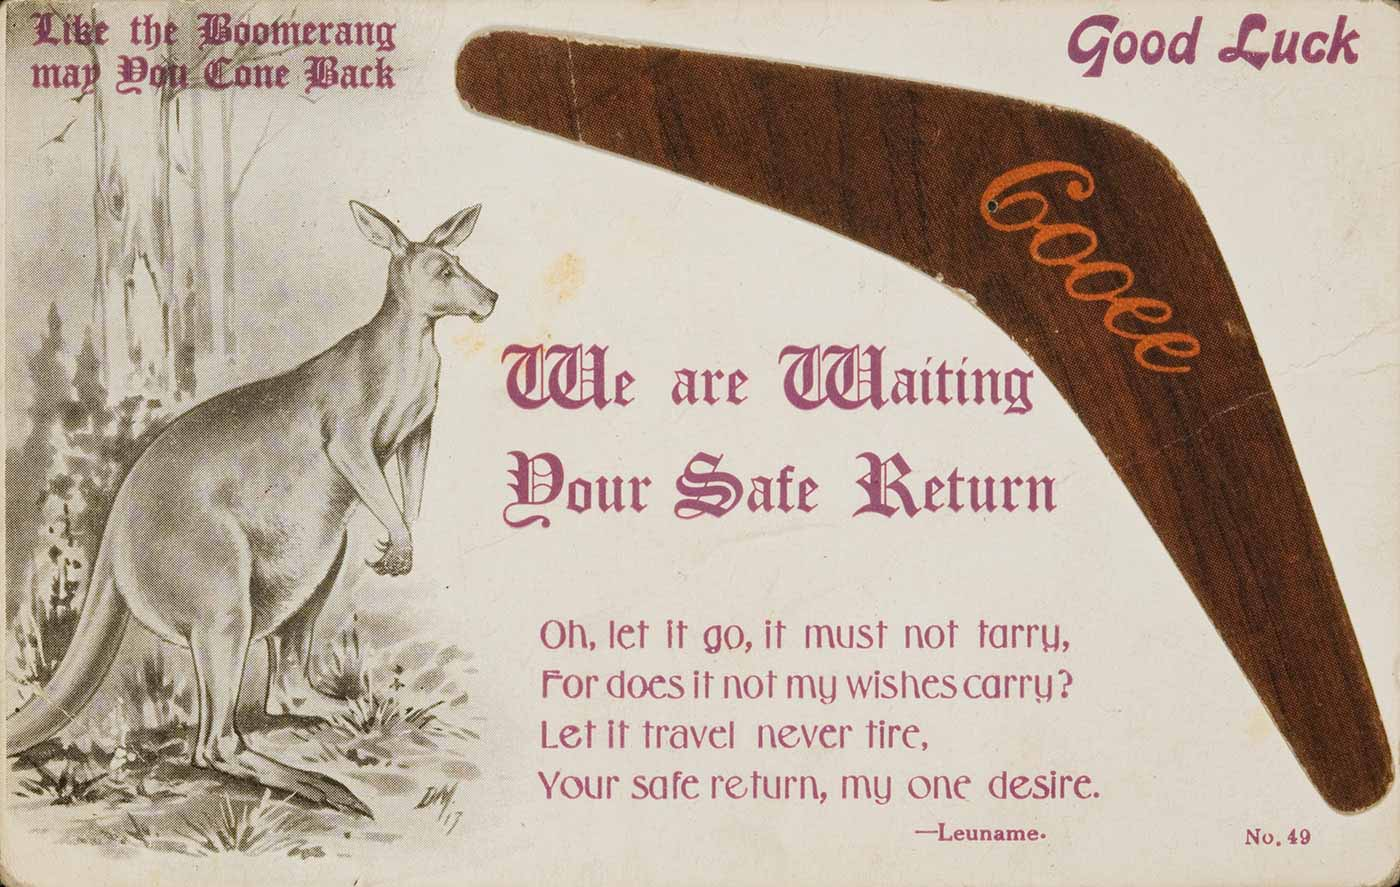 Postcard featuring a kangaroo and a boomerang. The text reads: 'Like the Boomerang may You Come Back. Good Luck. We are Waiting Your Safe Return. Oh, let it go, it must not tarry, For does it not my wishes carry? Let it travel never tire. Your safe return, my one desire - Leuname. No. 49'. The word 'Cooee' is written on the boomerang. - click to view larger image